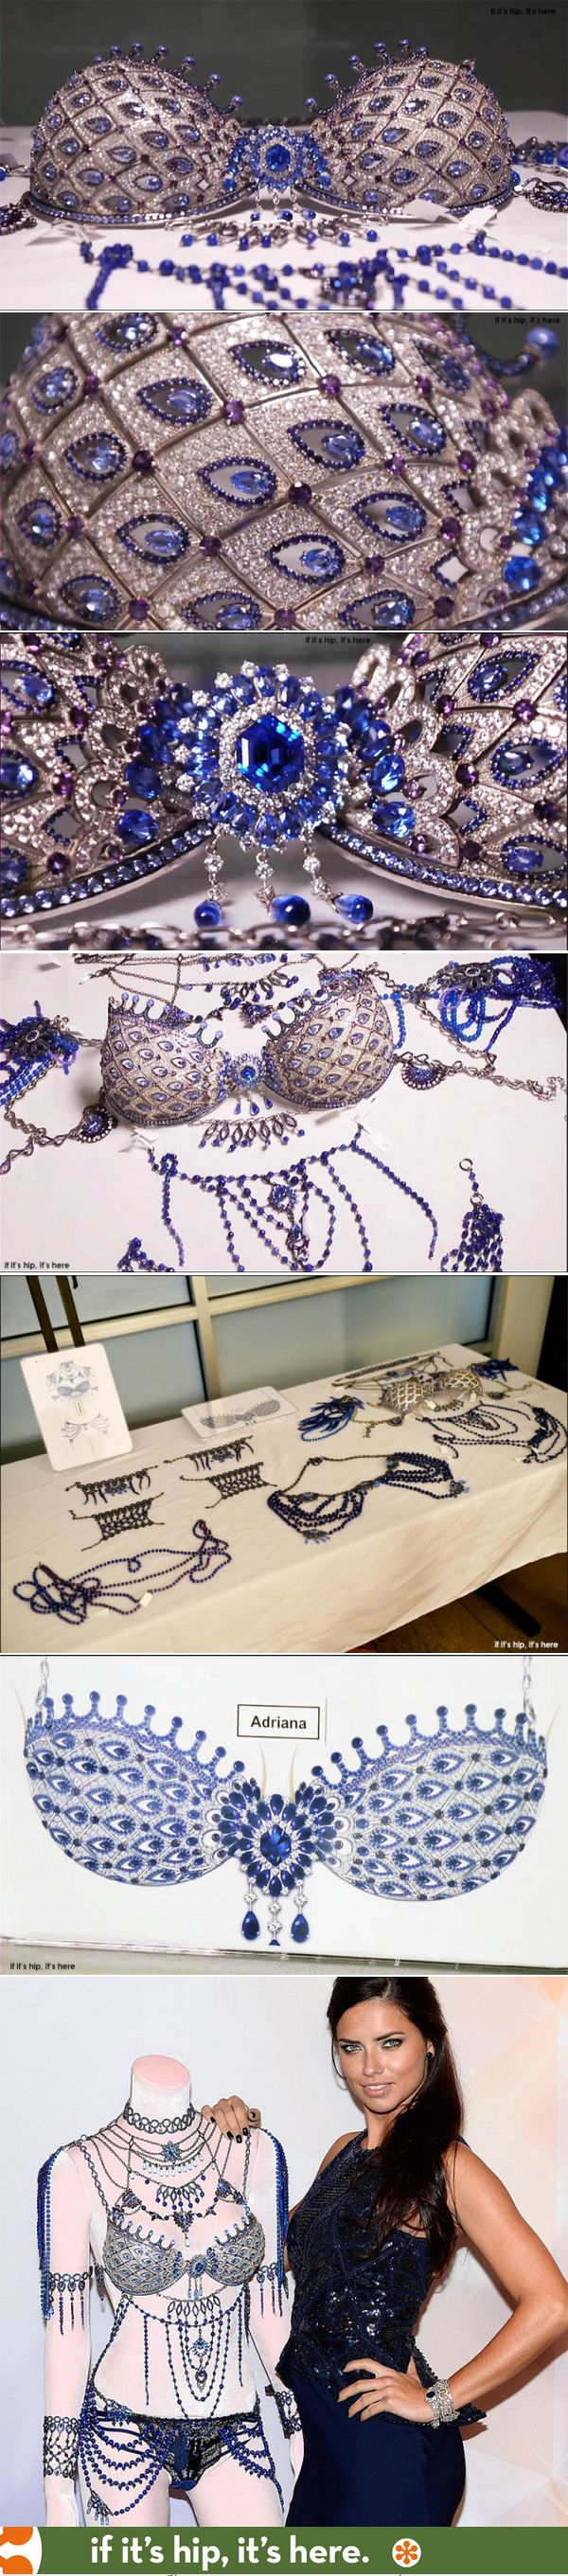 A close-up look at the amazing $2 million Sapphire Fantasy Bra by Mouawad for Victoria's Secret at http://www.ifitshipitshere.com/forget-boobs-look-bras-2014-fantasy-bras-mouawad-victorias-secret/